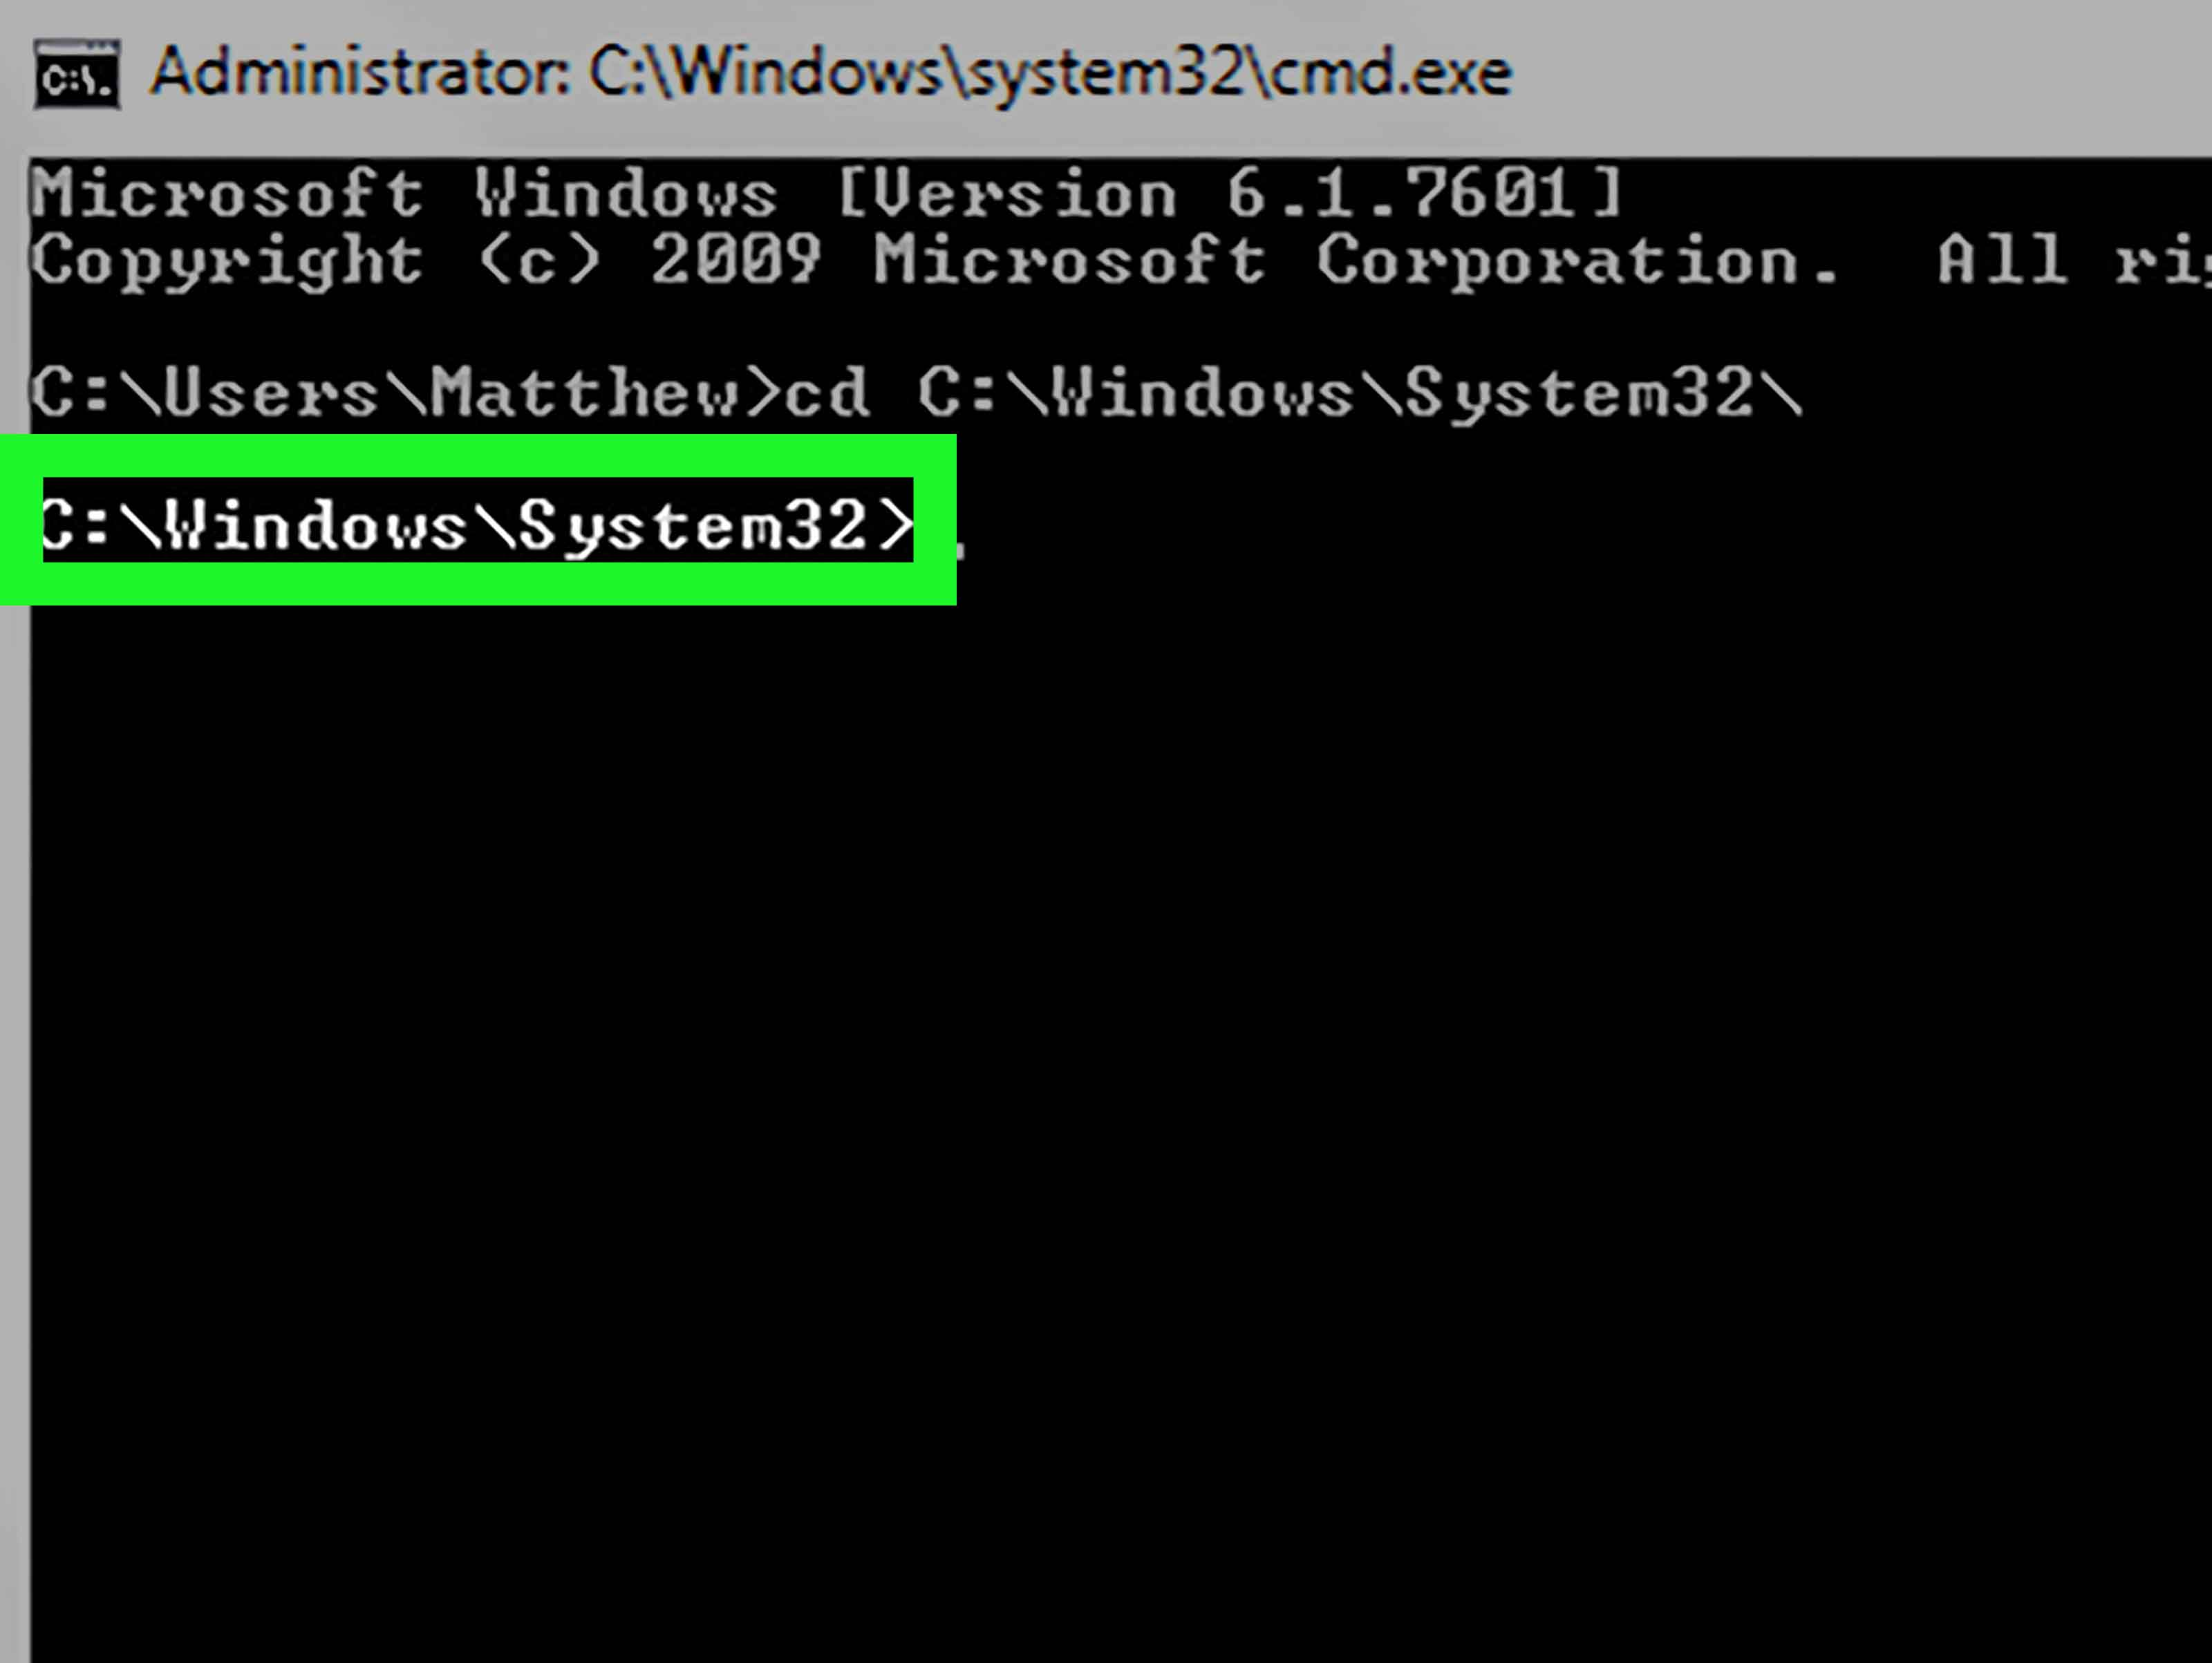 The system cannot find the path specified